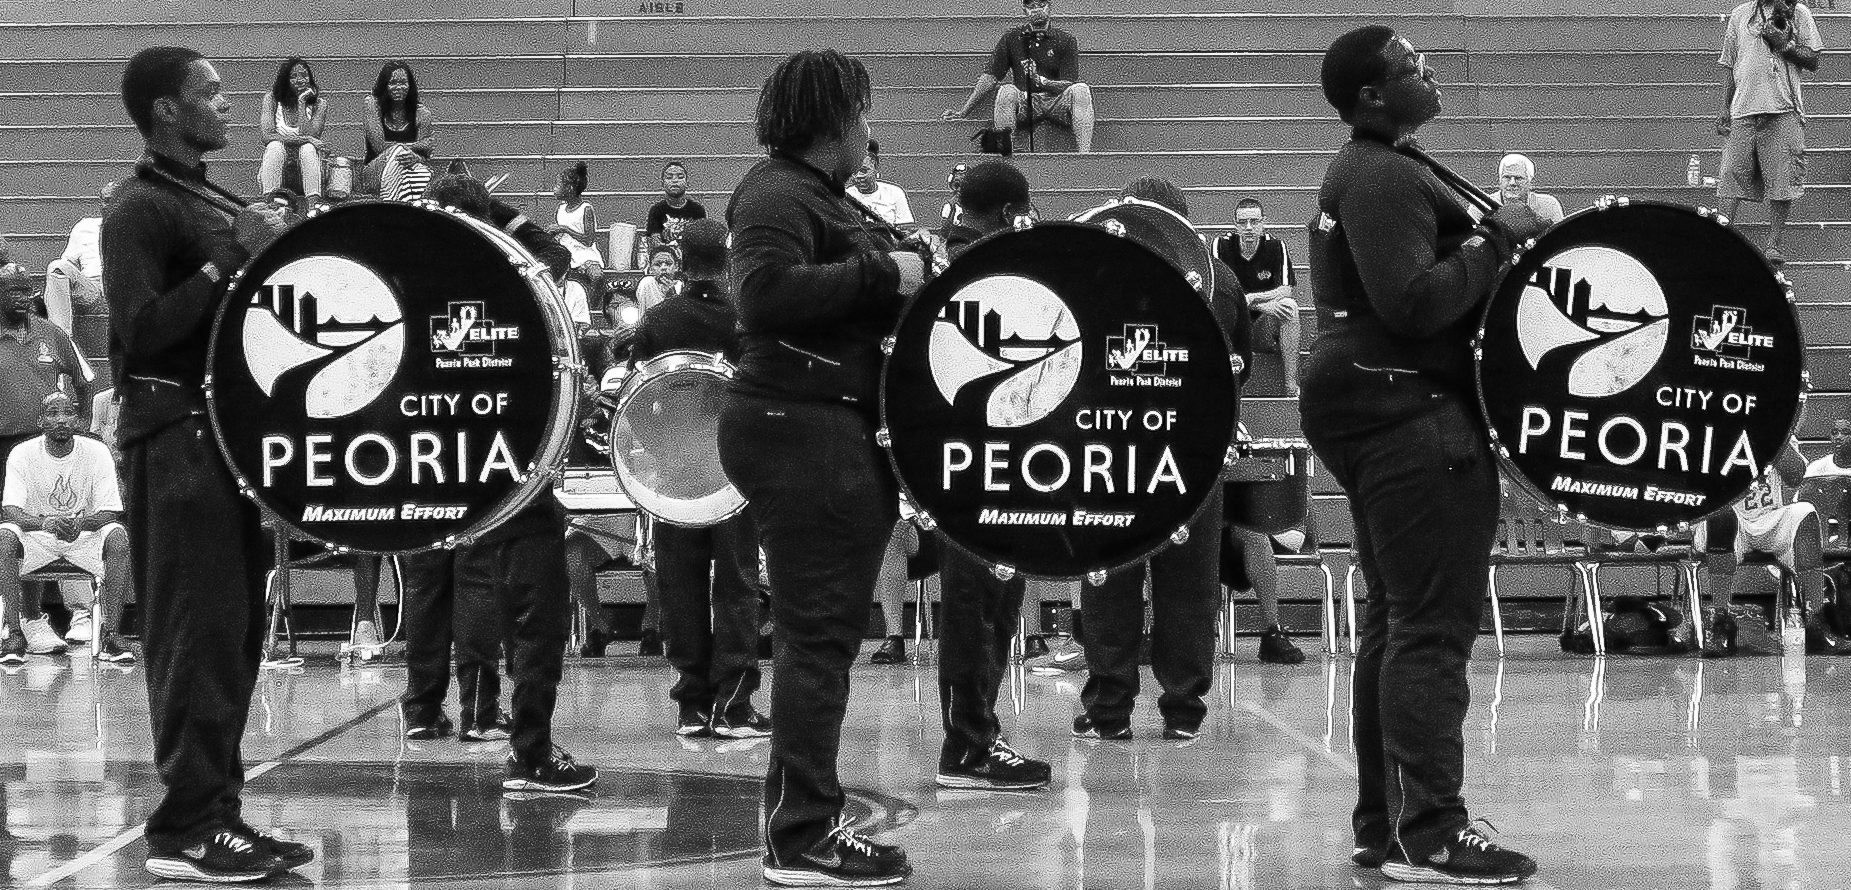 Base drummers performing before the start of the King City Monarchs vs Midwest Flames Basketball game at Woodruff High School in Peoria, IL